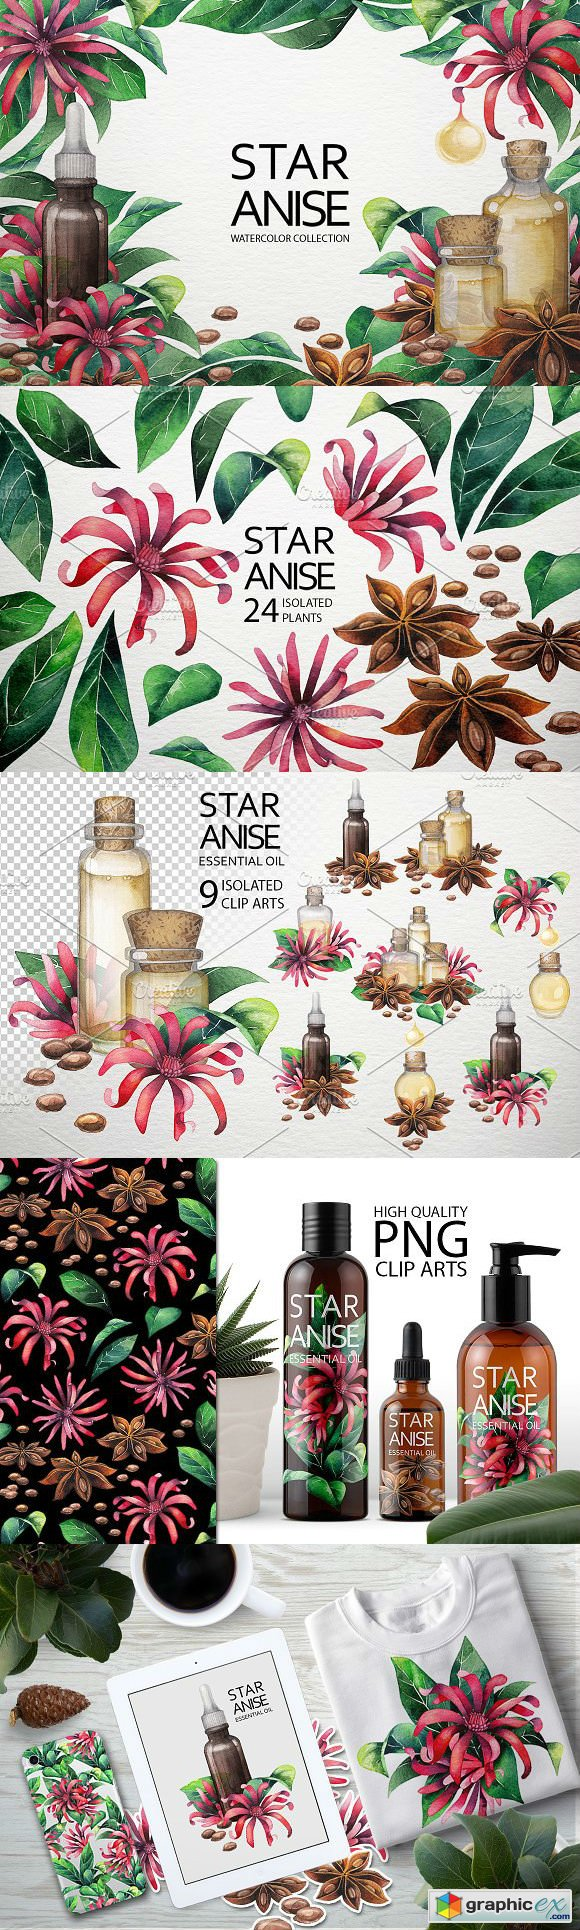 Watercolor Star Anise collection